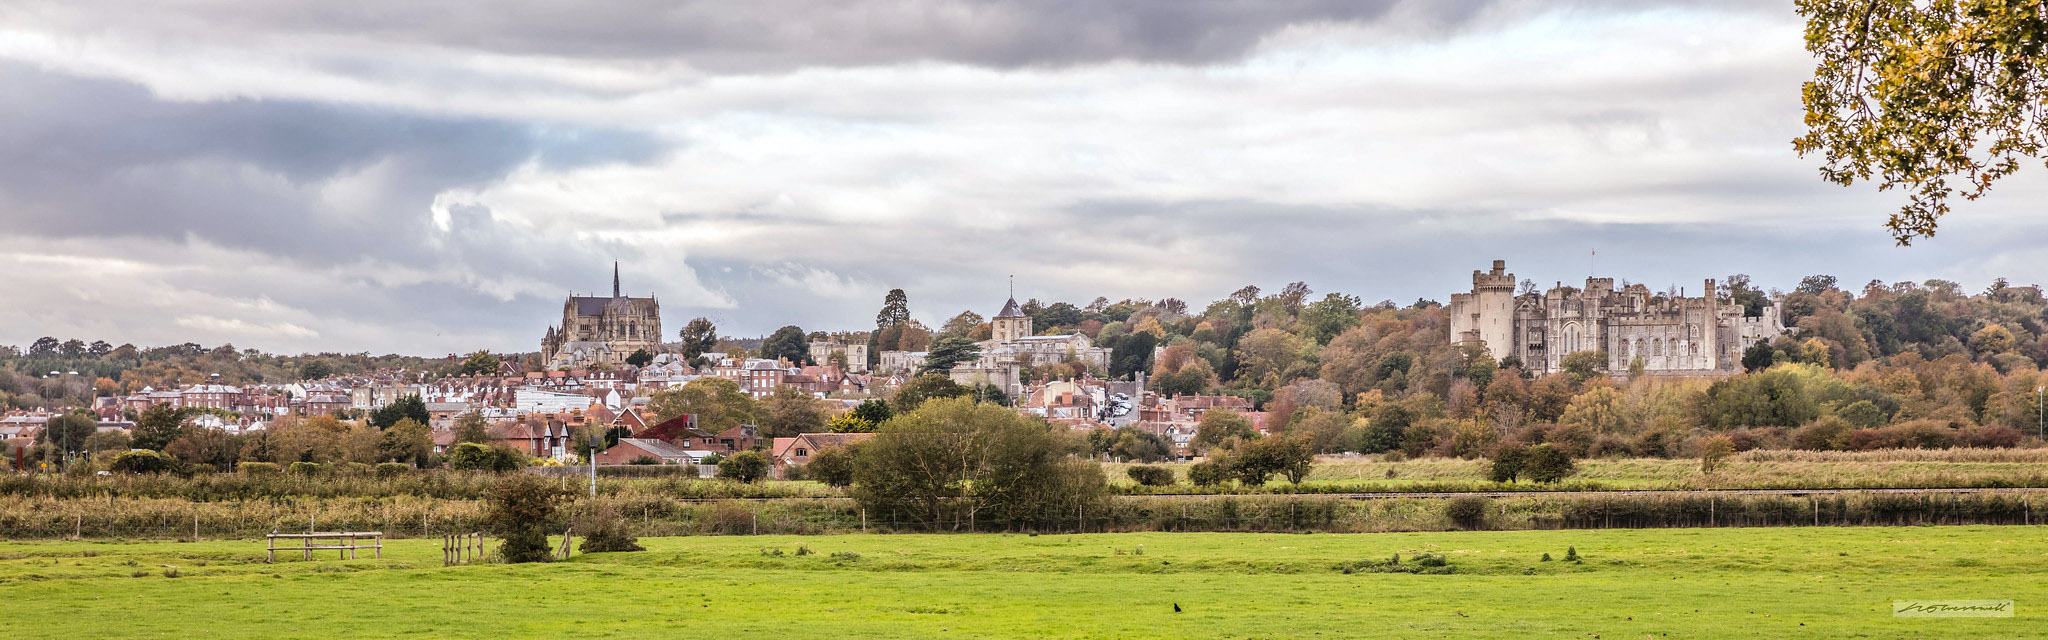 Panorama of the town of Arundel and Arundel Castle across the flood-plain of the River Arun by Neil Cresswell.jpg